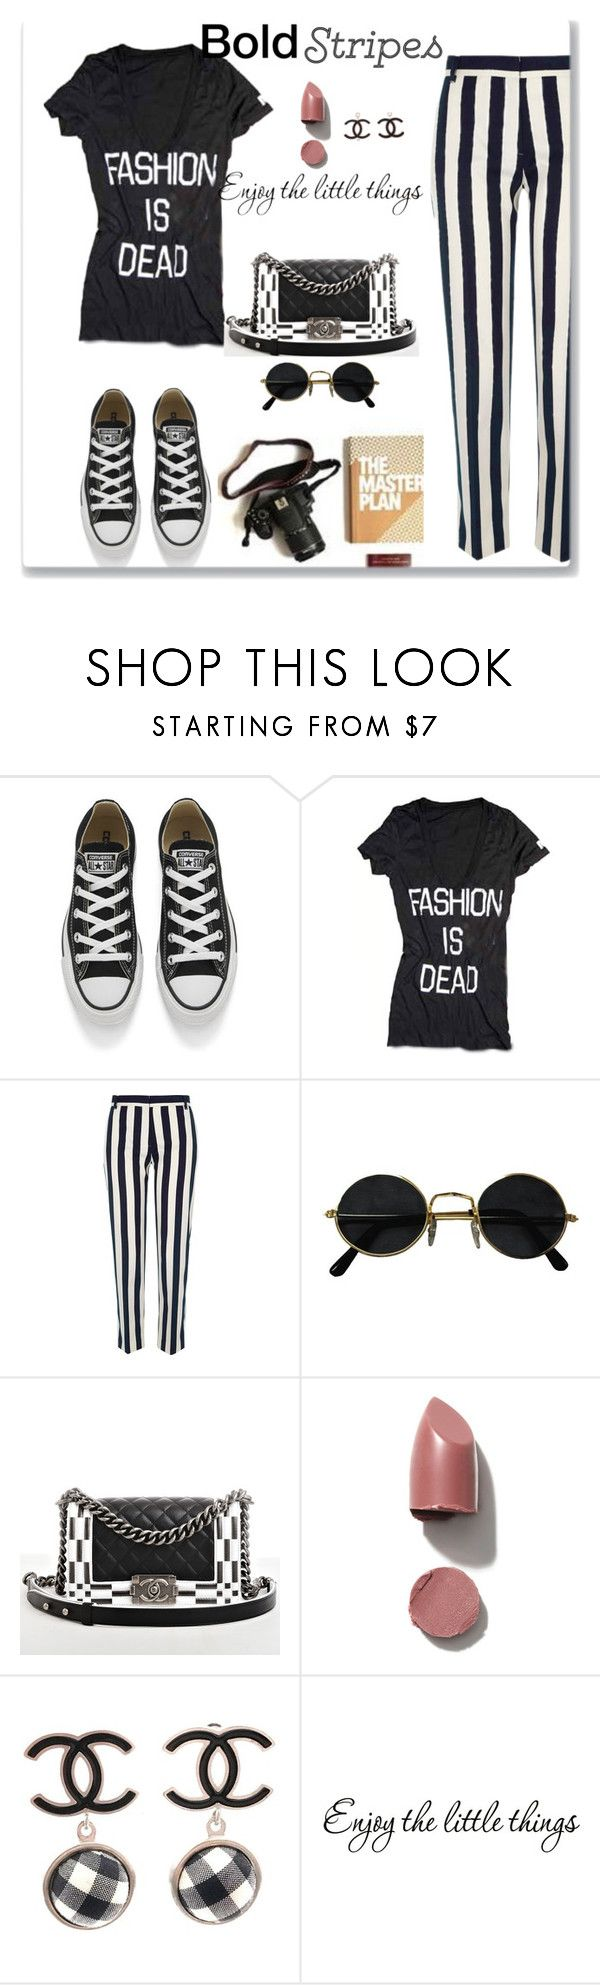 Castle For Sale At The Madison Club Avi Youtube -  photographer by rastaress motso liked on polyvore featuring converse rebel yell